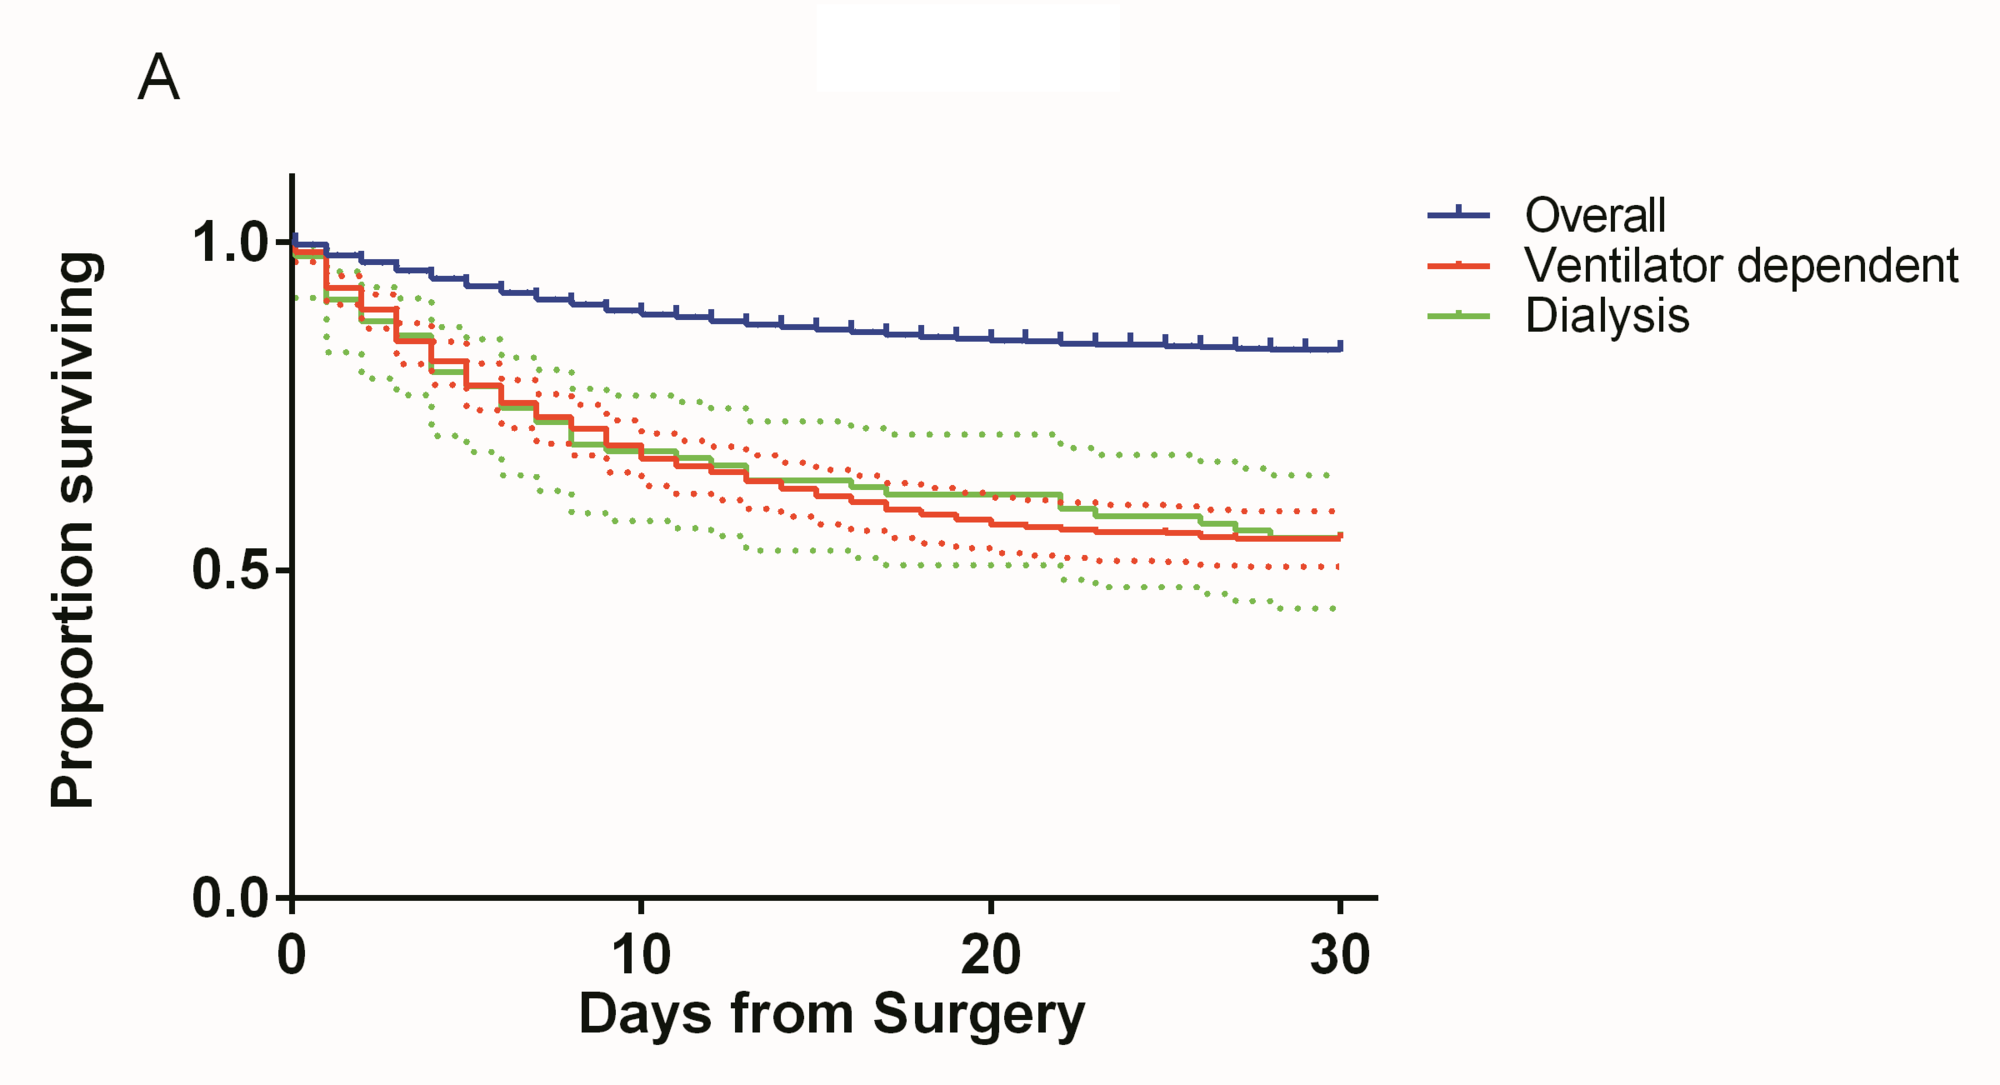 Kaplan-Meier-curves-showing-overall-30-day-survival-compared-to-30-day-survival-in-ventilator-dependent-and-dialysis-patients-with-95%-confidence-intervals.